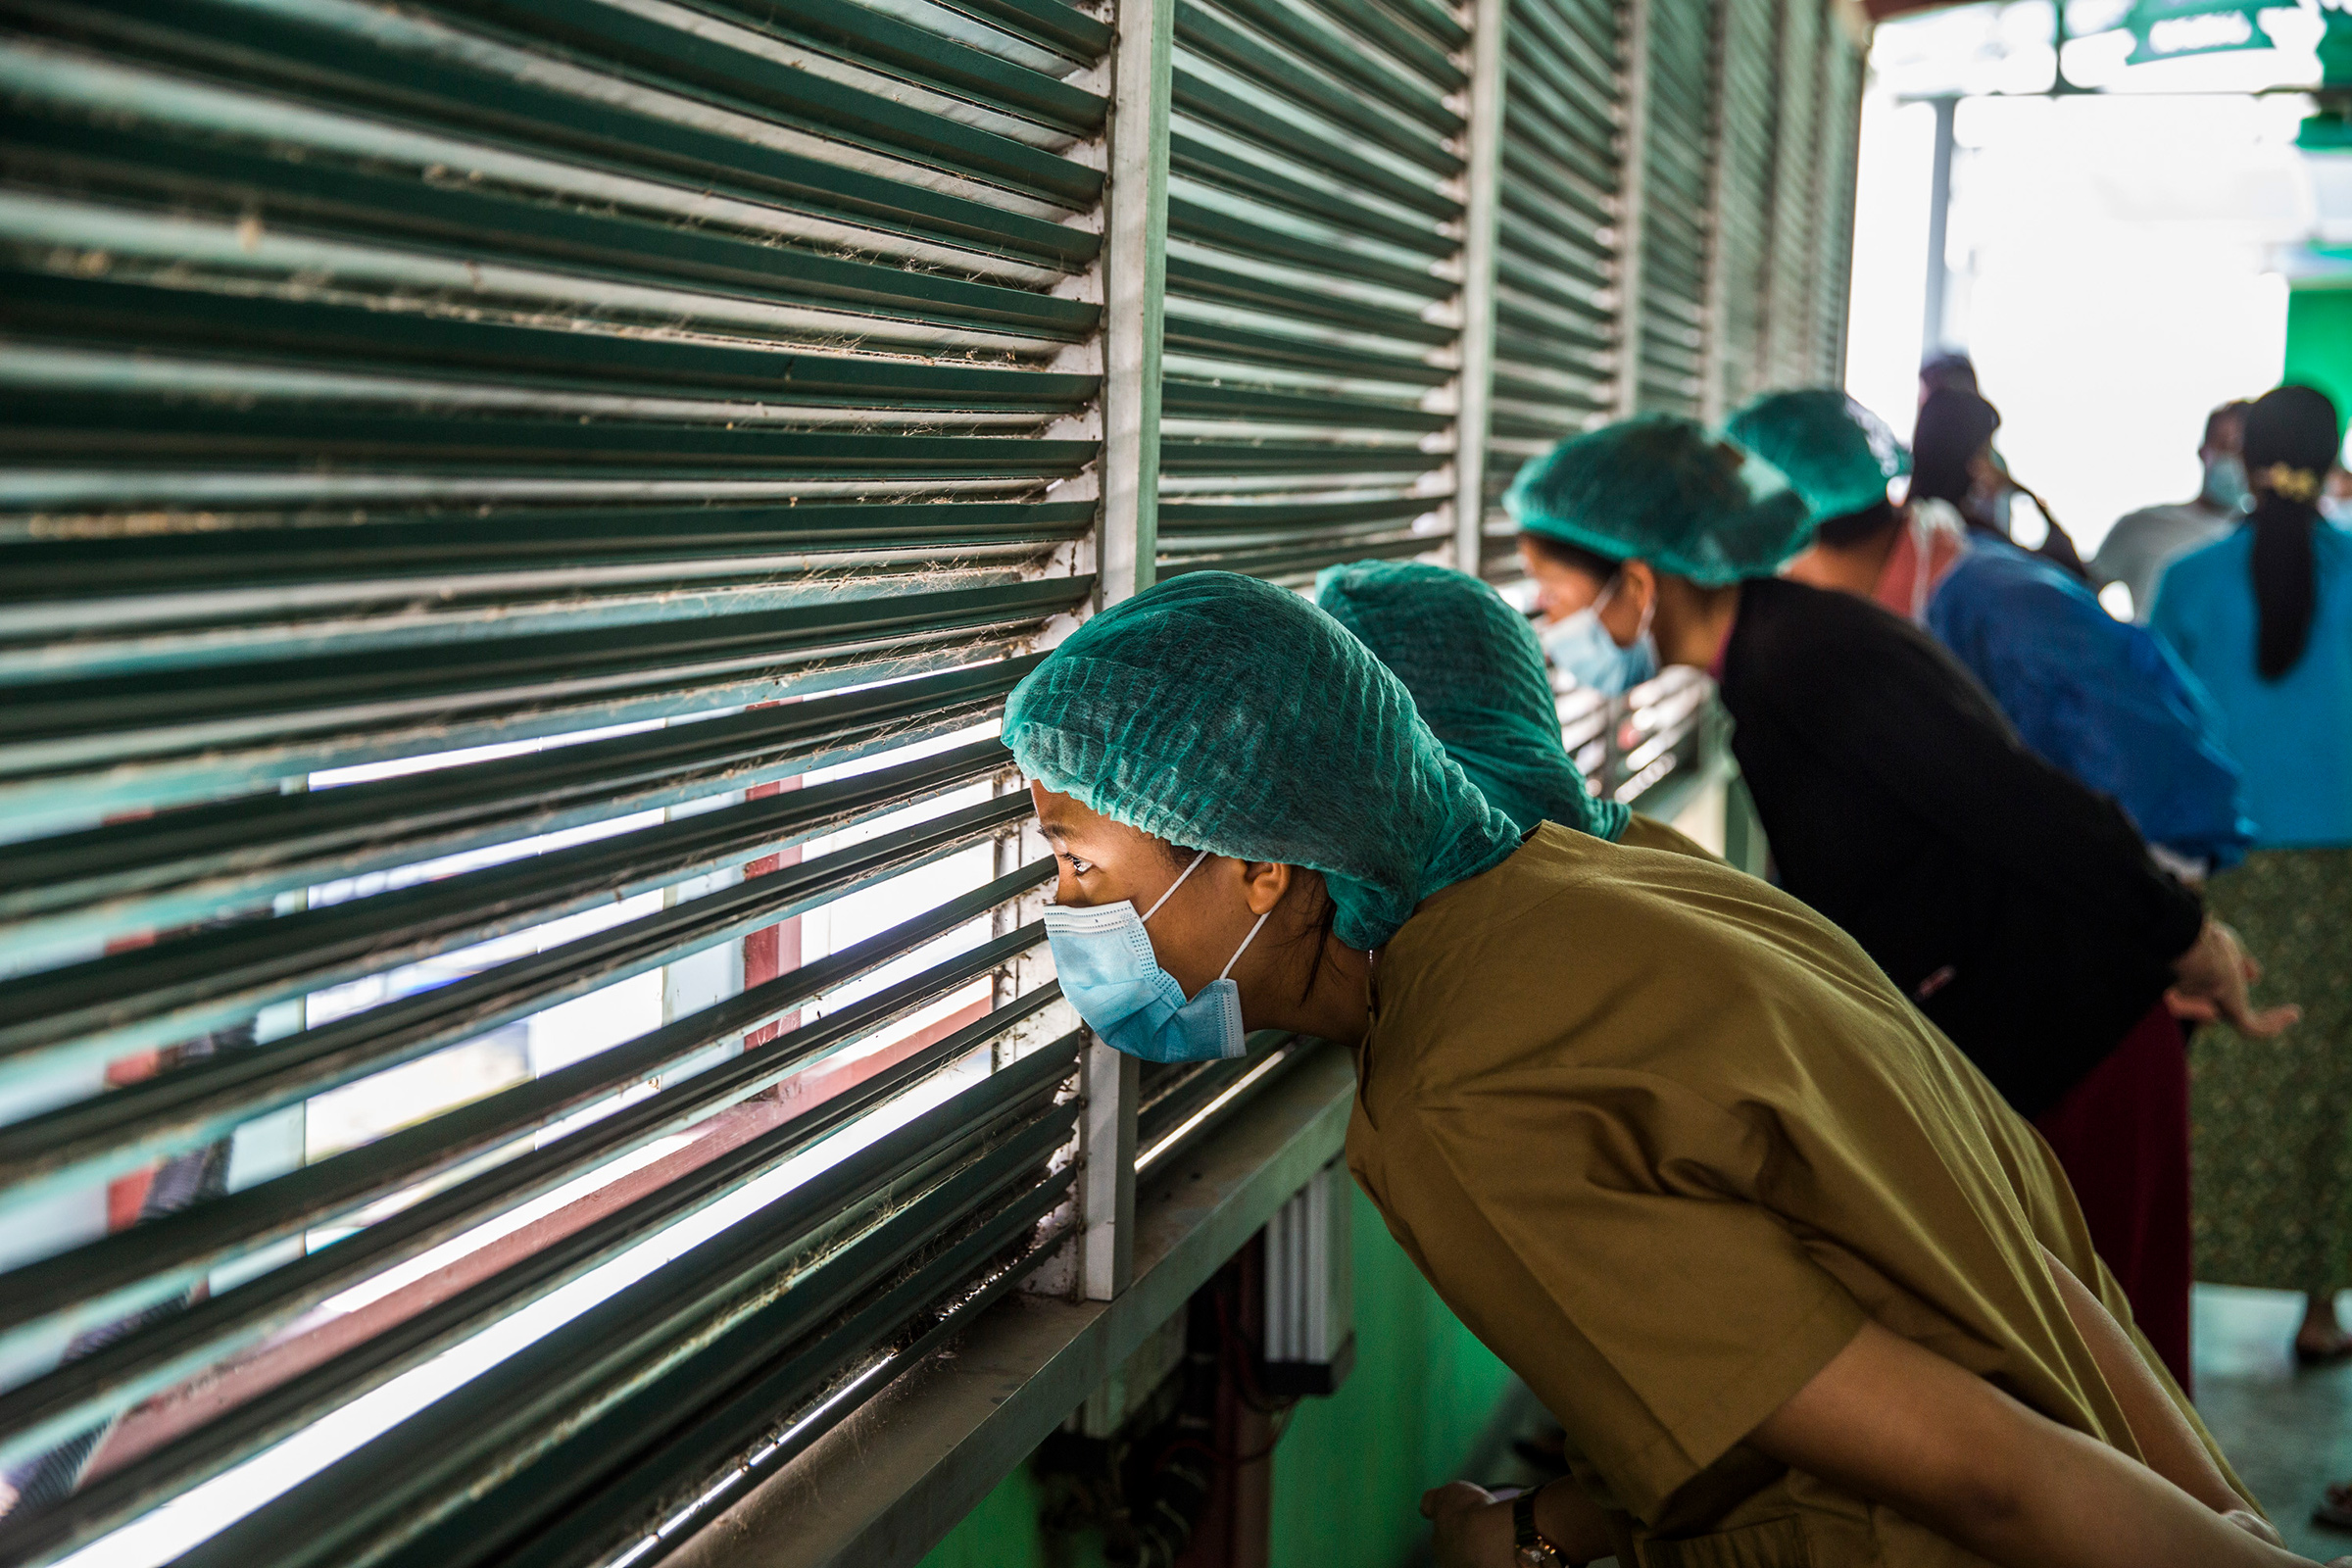 Health care workers watch protesters demonstrate against Myanmar's military coup in Myanmar's capital of Yangon, Feb. 28.